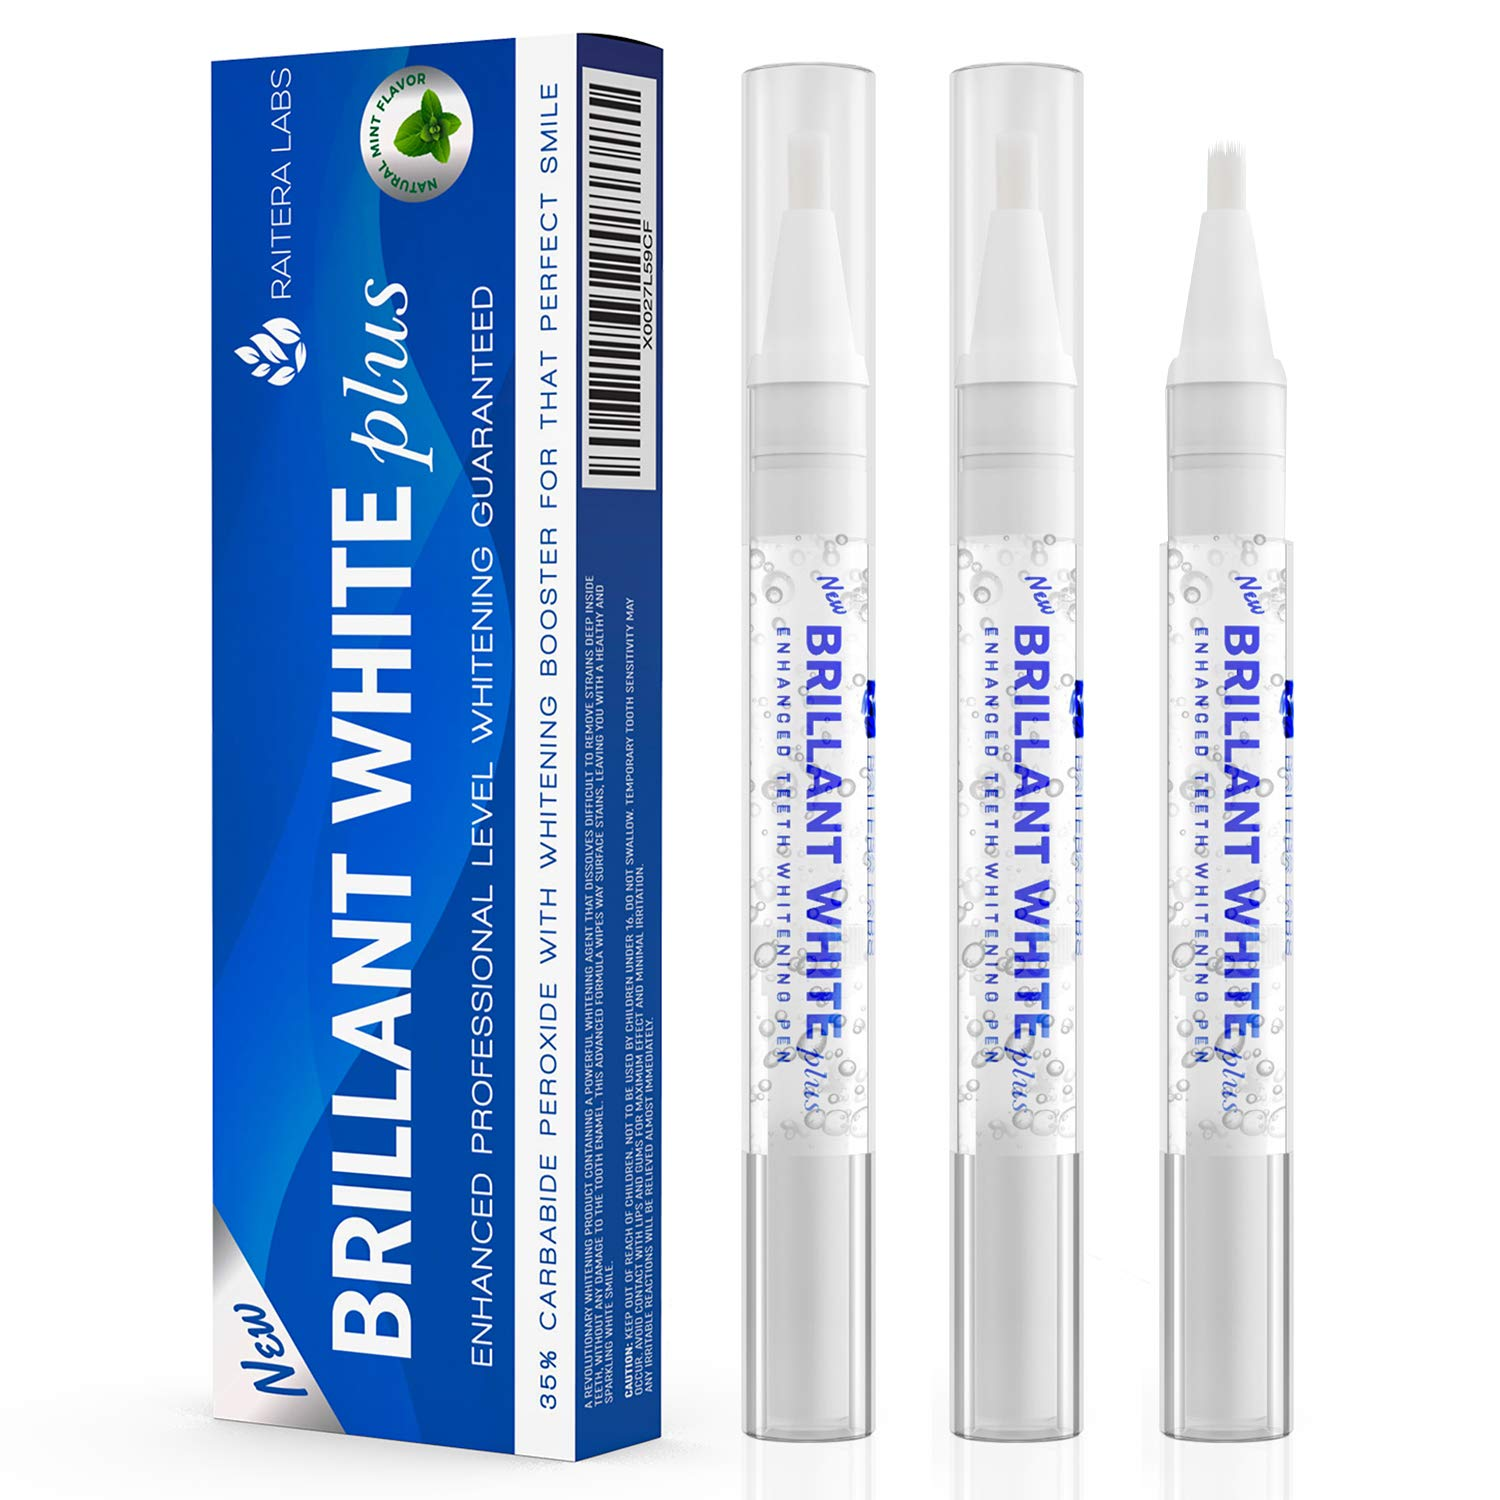 Raitera Teeth Whitening Pen Kit With Whitening Booster | Powerful 35% Carbamide Peroxide Teeth Whitening Gel | Tooth Whitening Pen | Teeth Whitening Kit Gel Pens for Sparkling White Teeth Whitener